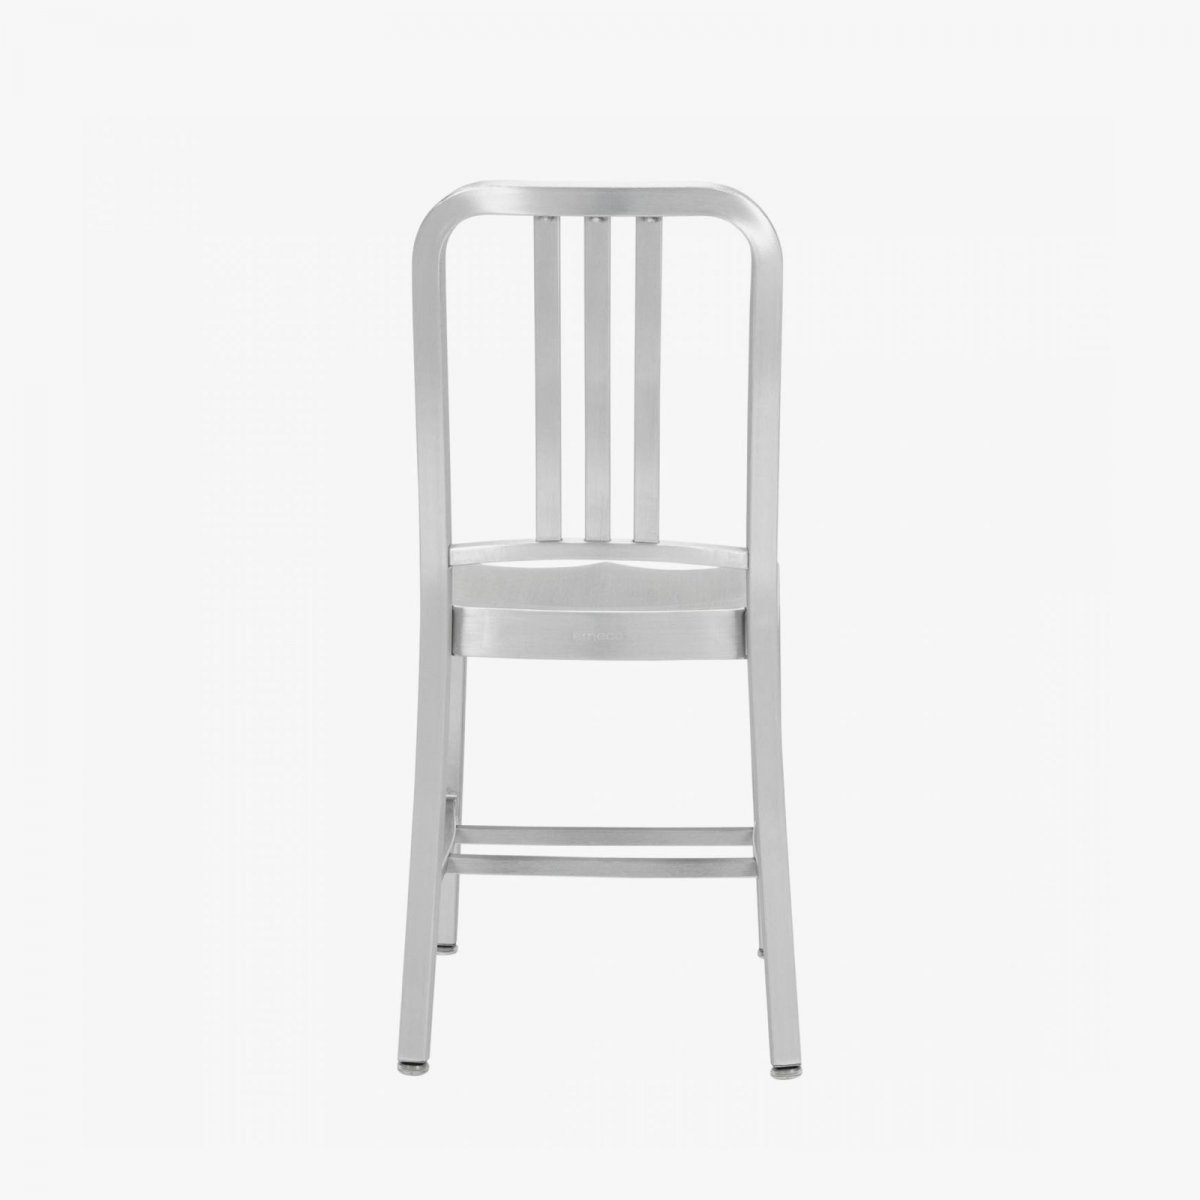 Navy Chair, hand-brushed, back view.